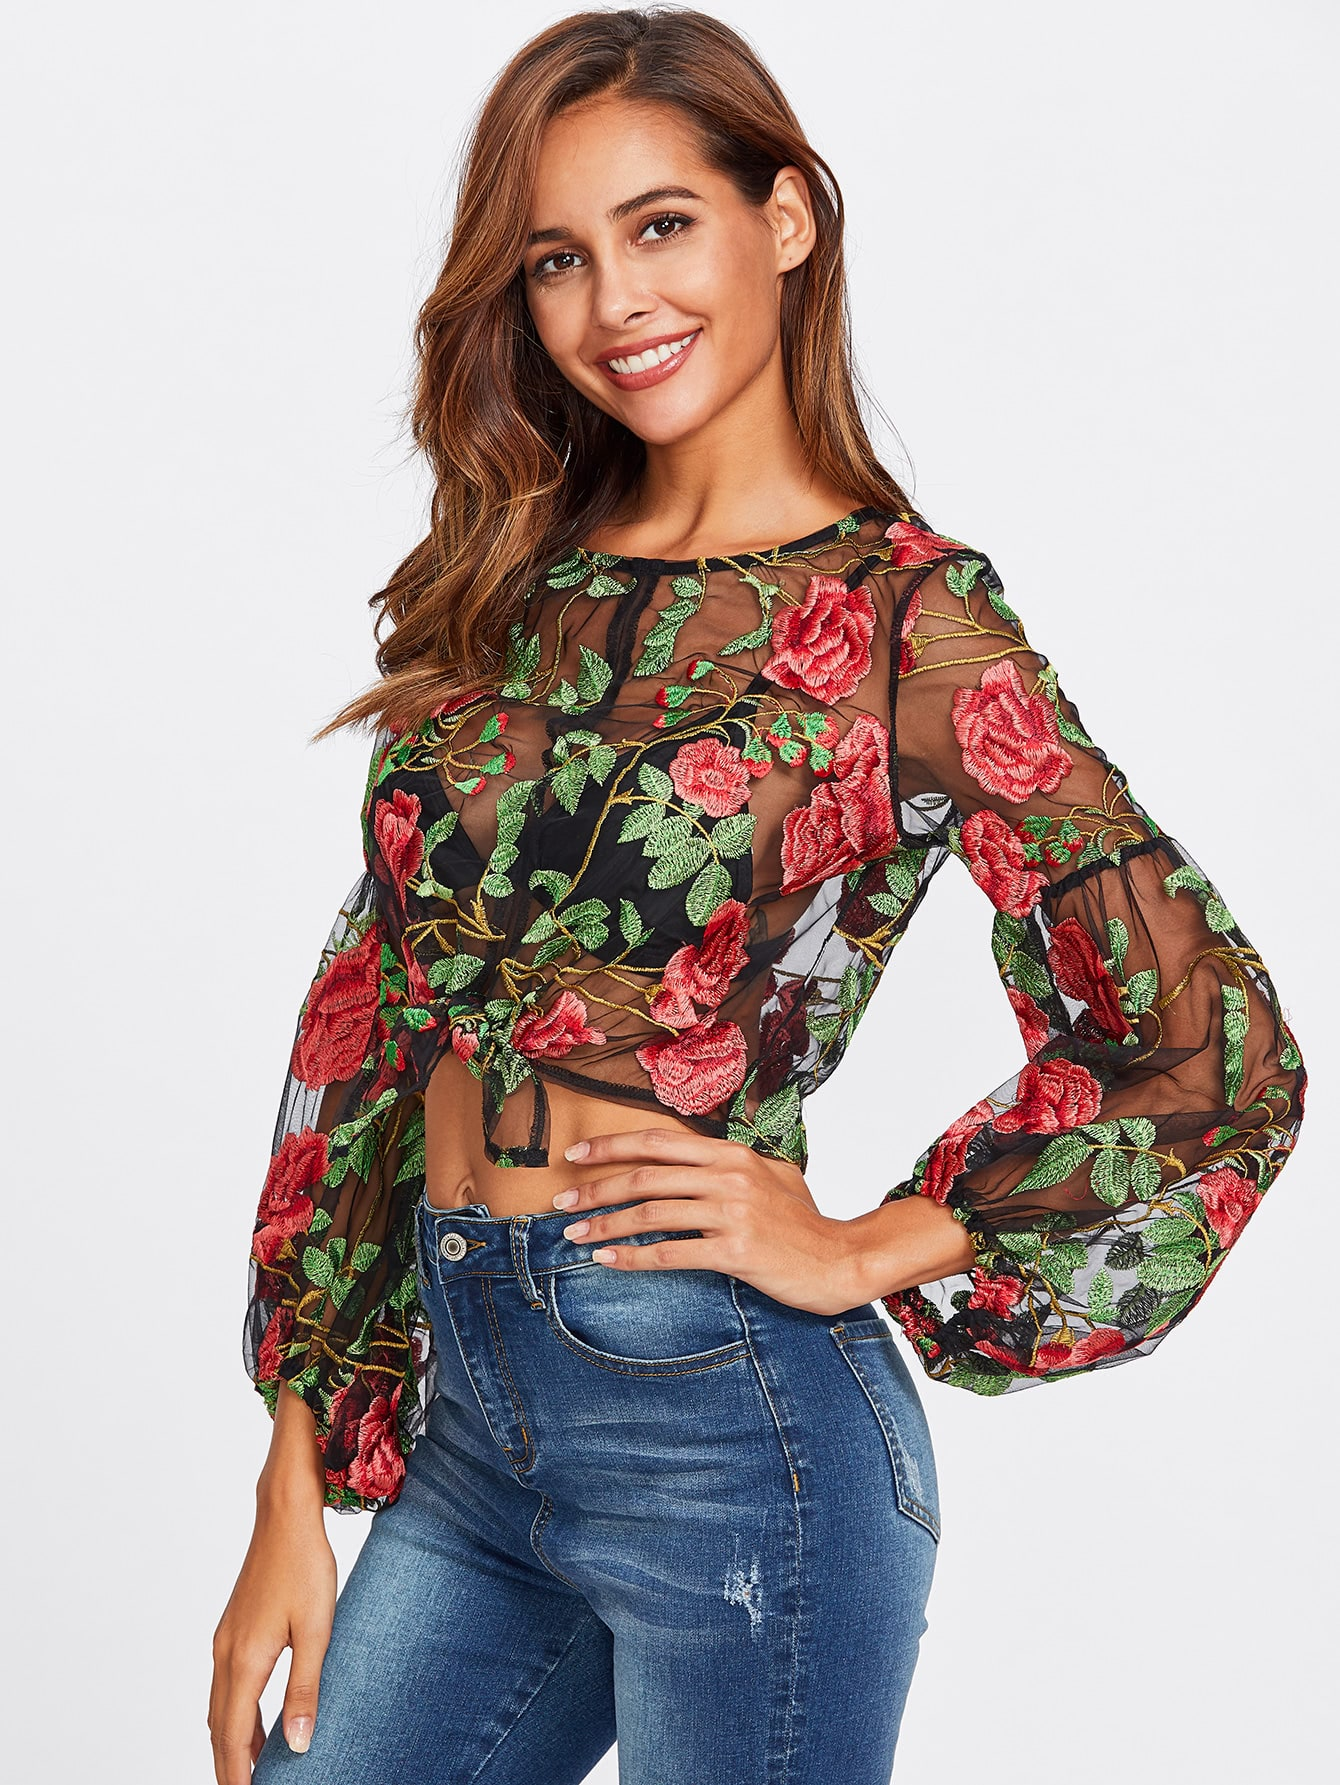 Knot Front Lantern Sleeve Embroidered Mesh Top blouse170825452